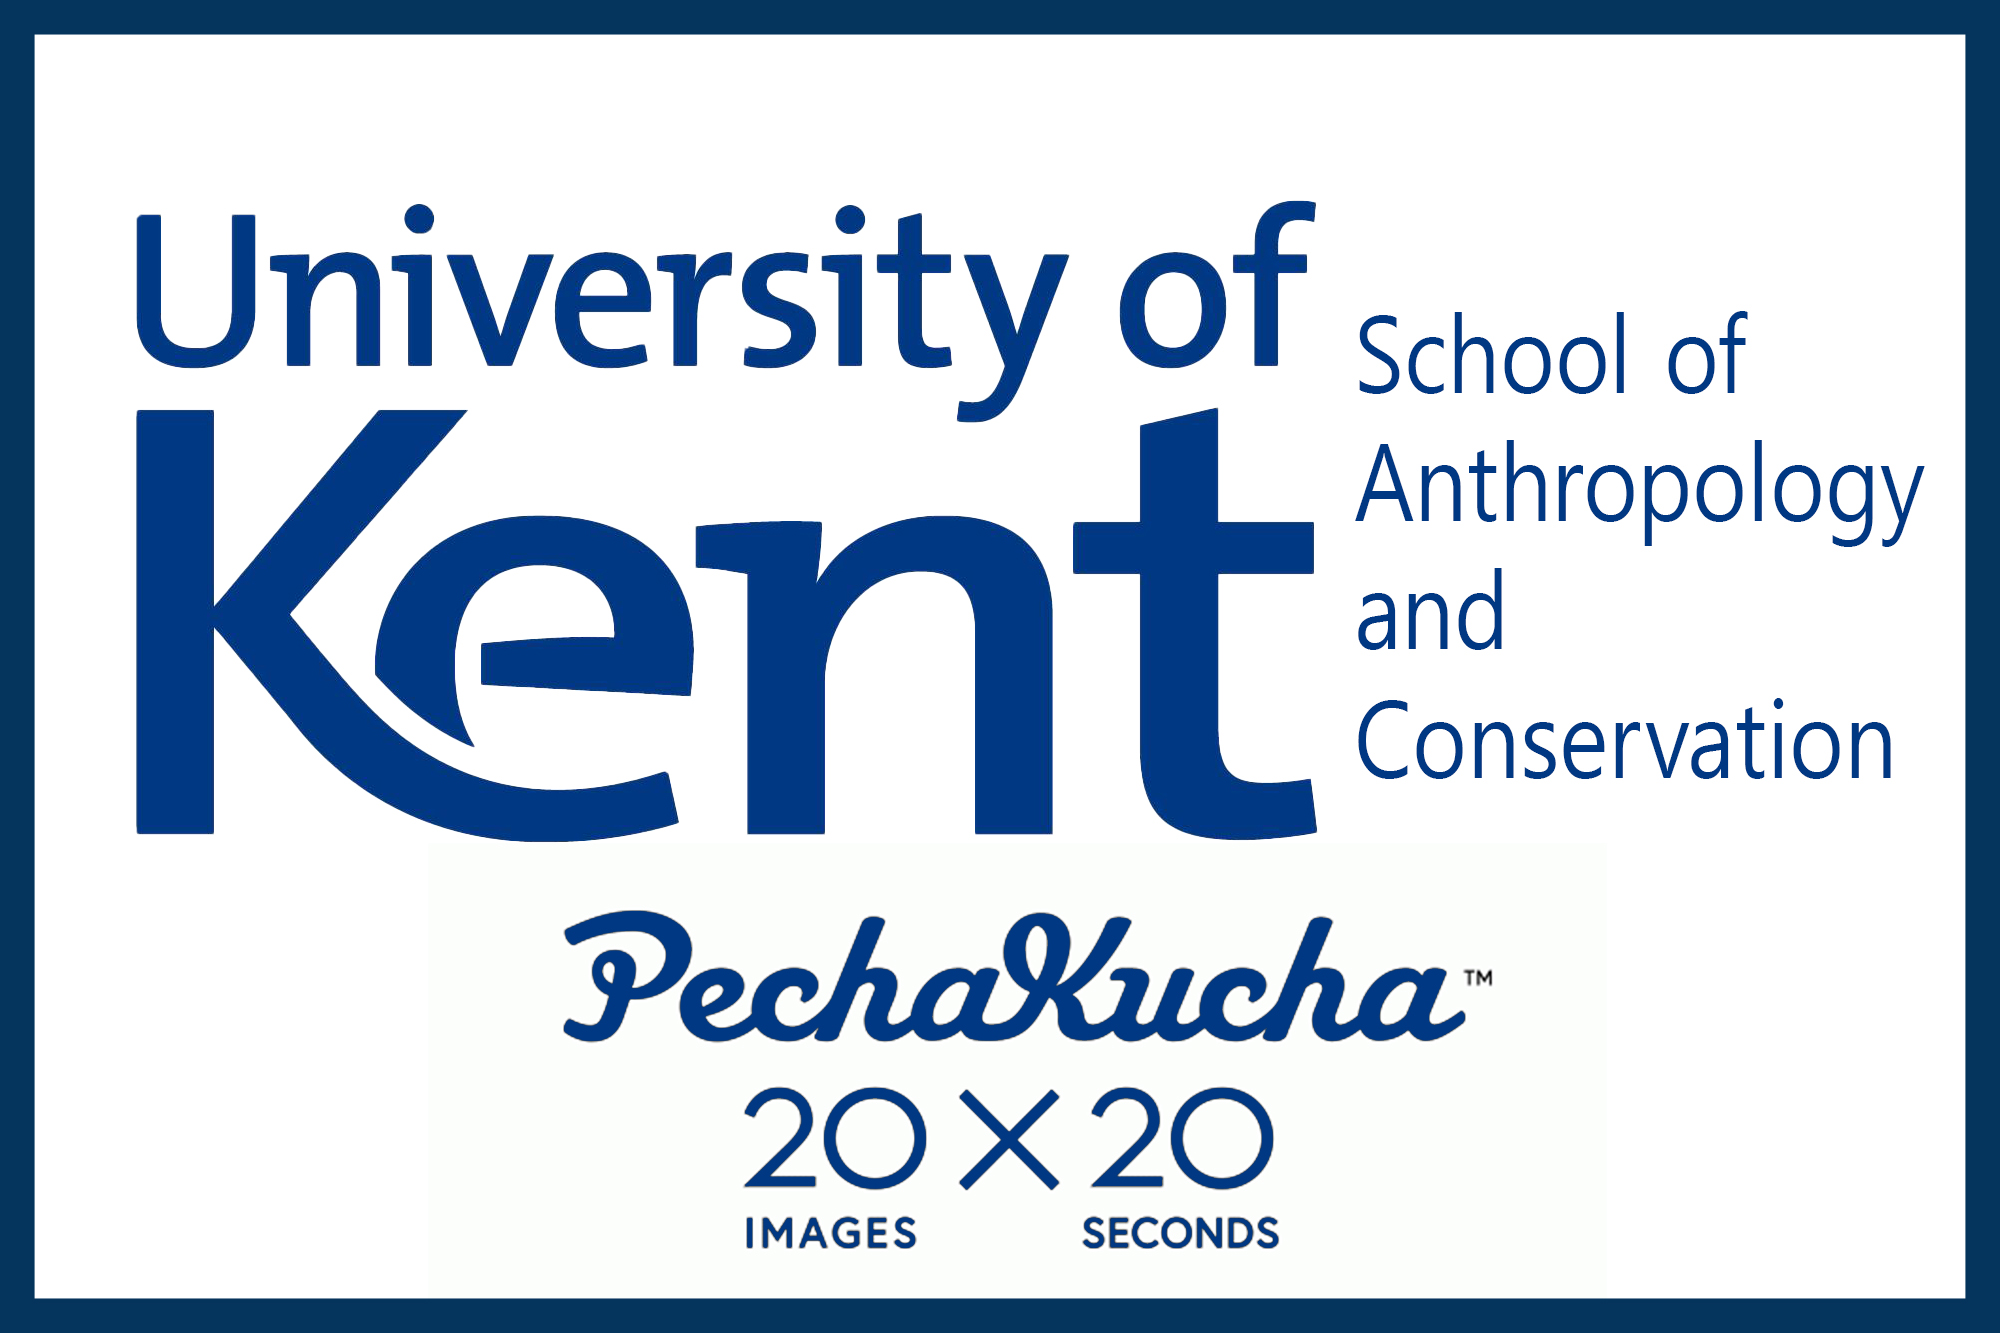 PechaKucha: 20 images x 20 seconds